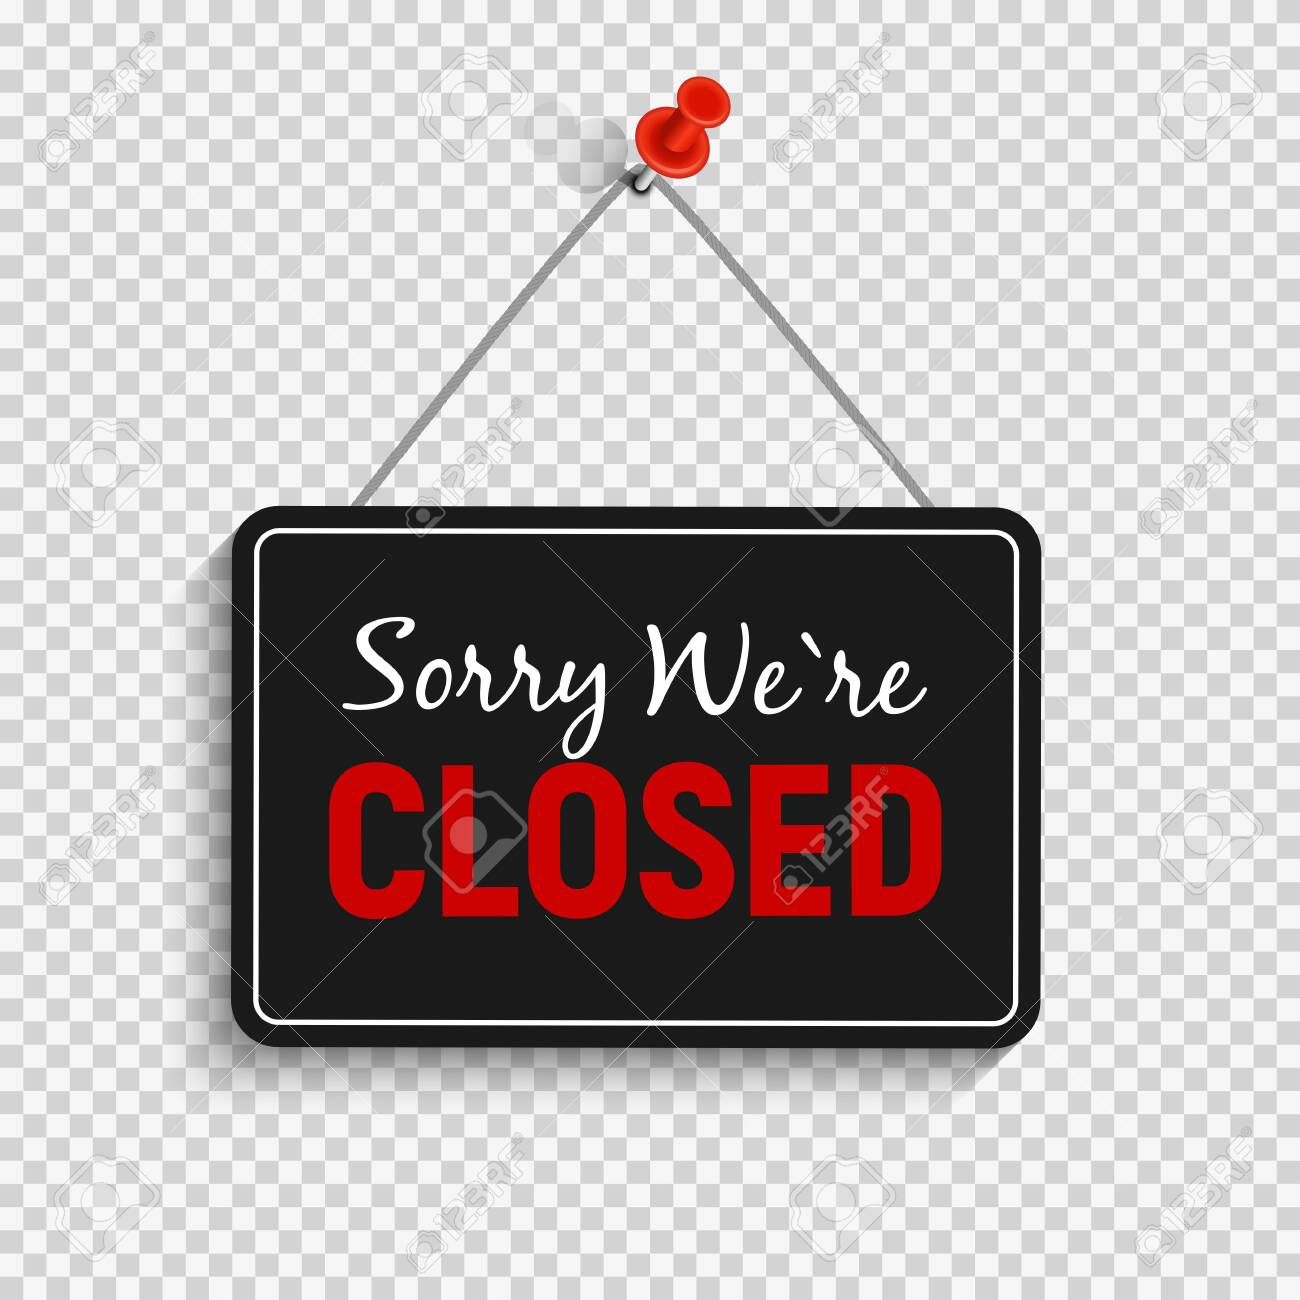 Sorry We are Closed Sign Vector Illustration - 145780337